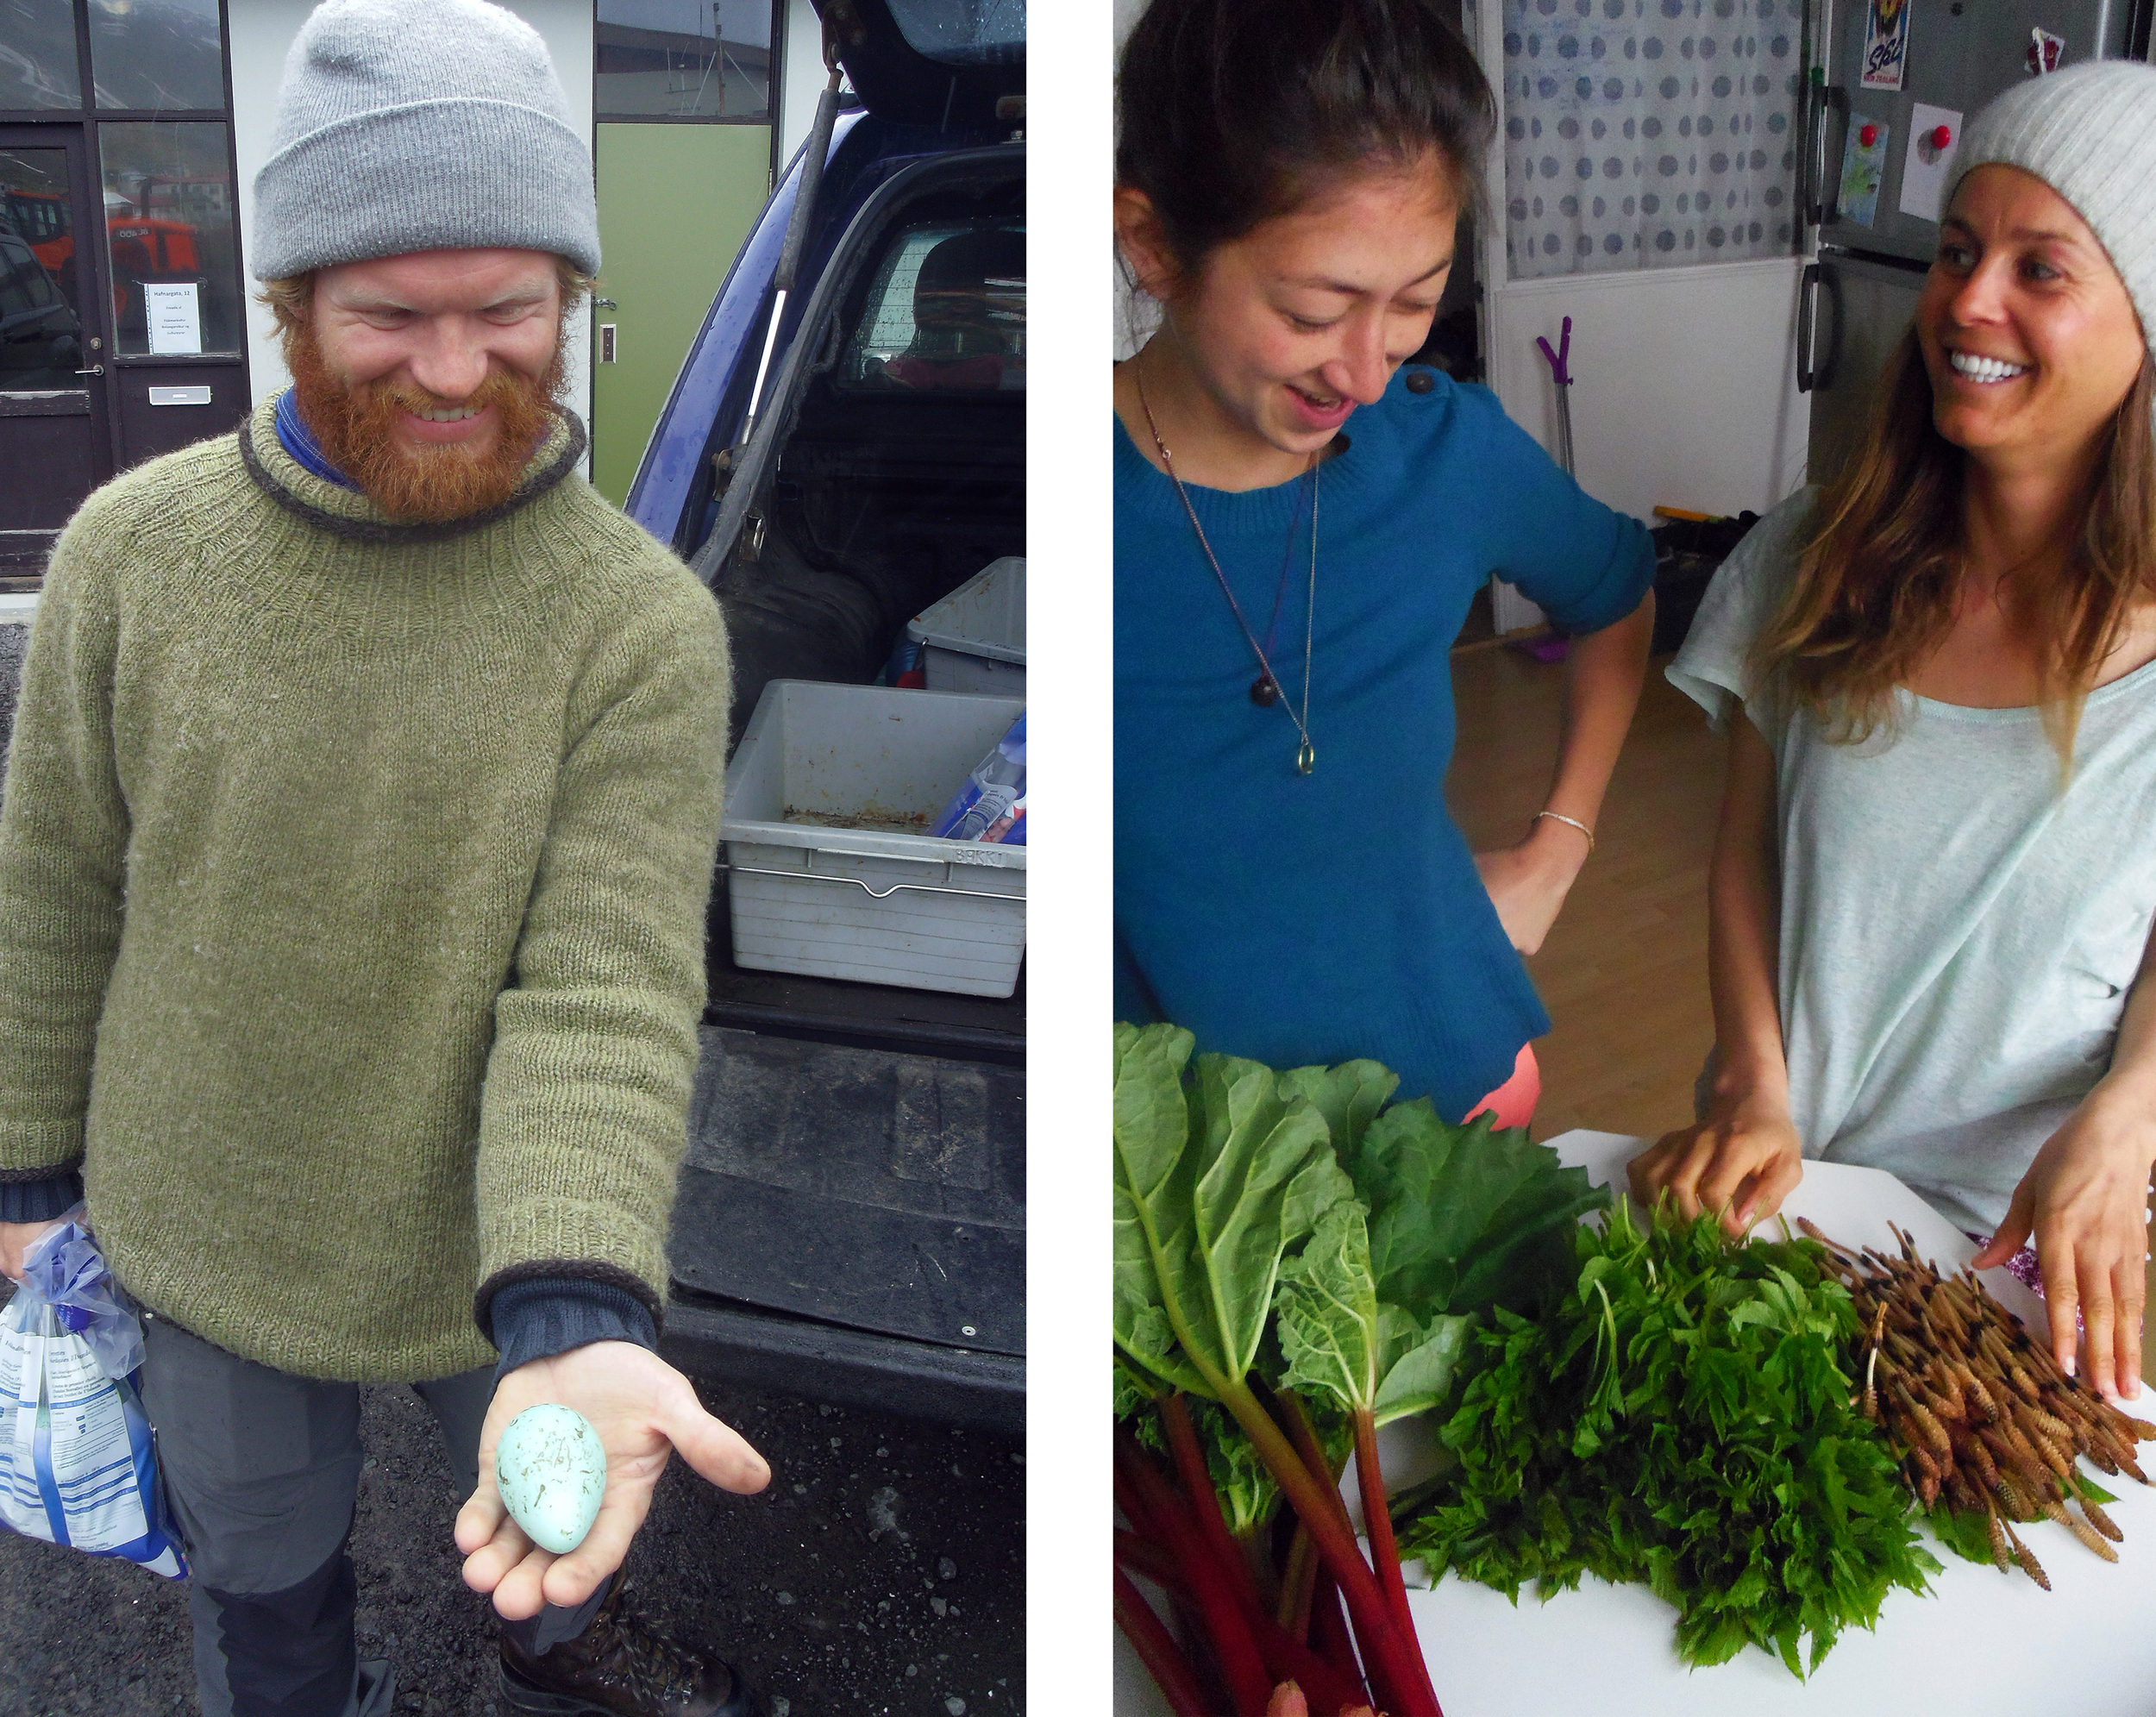 Viðar Kristinsson with the philosopher's egg and Tanja Geis and Camilla Edwards with foraged Rhubarb, Ground Elder and Horsetail